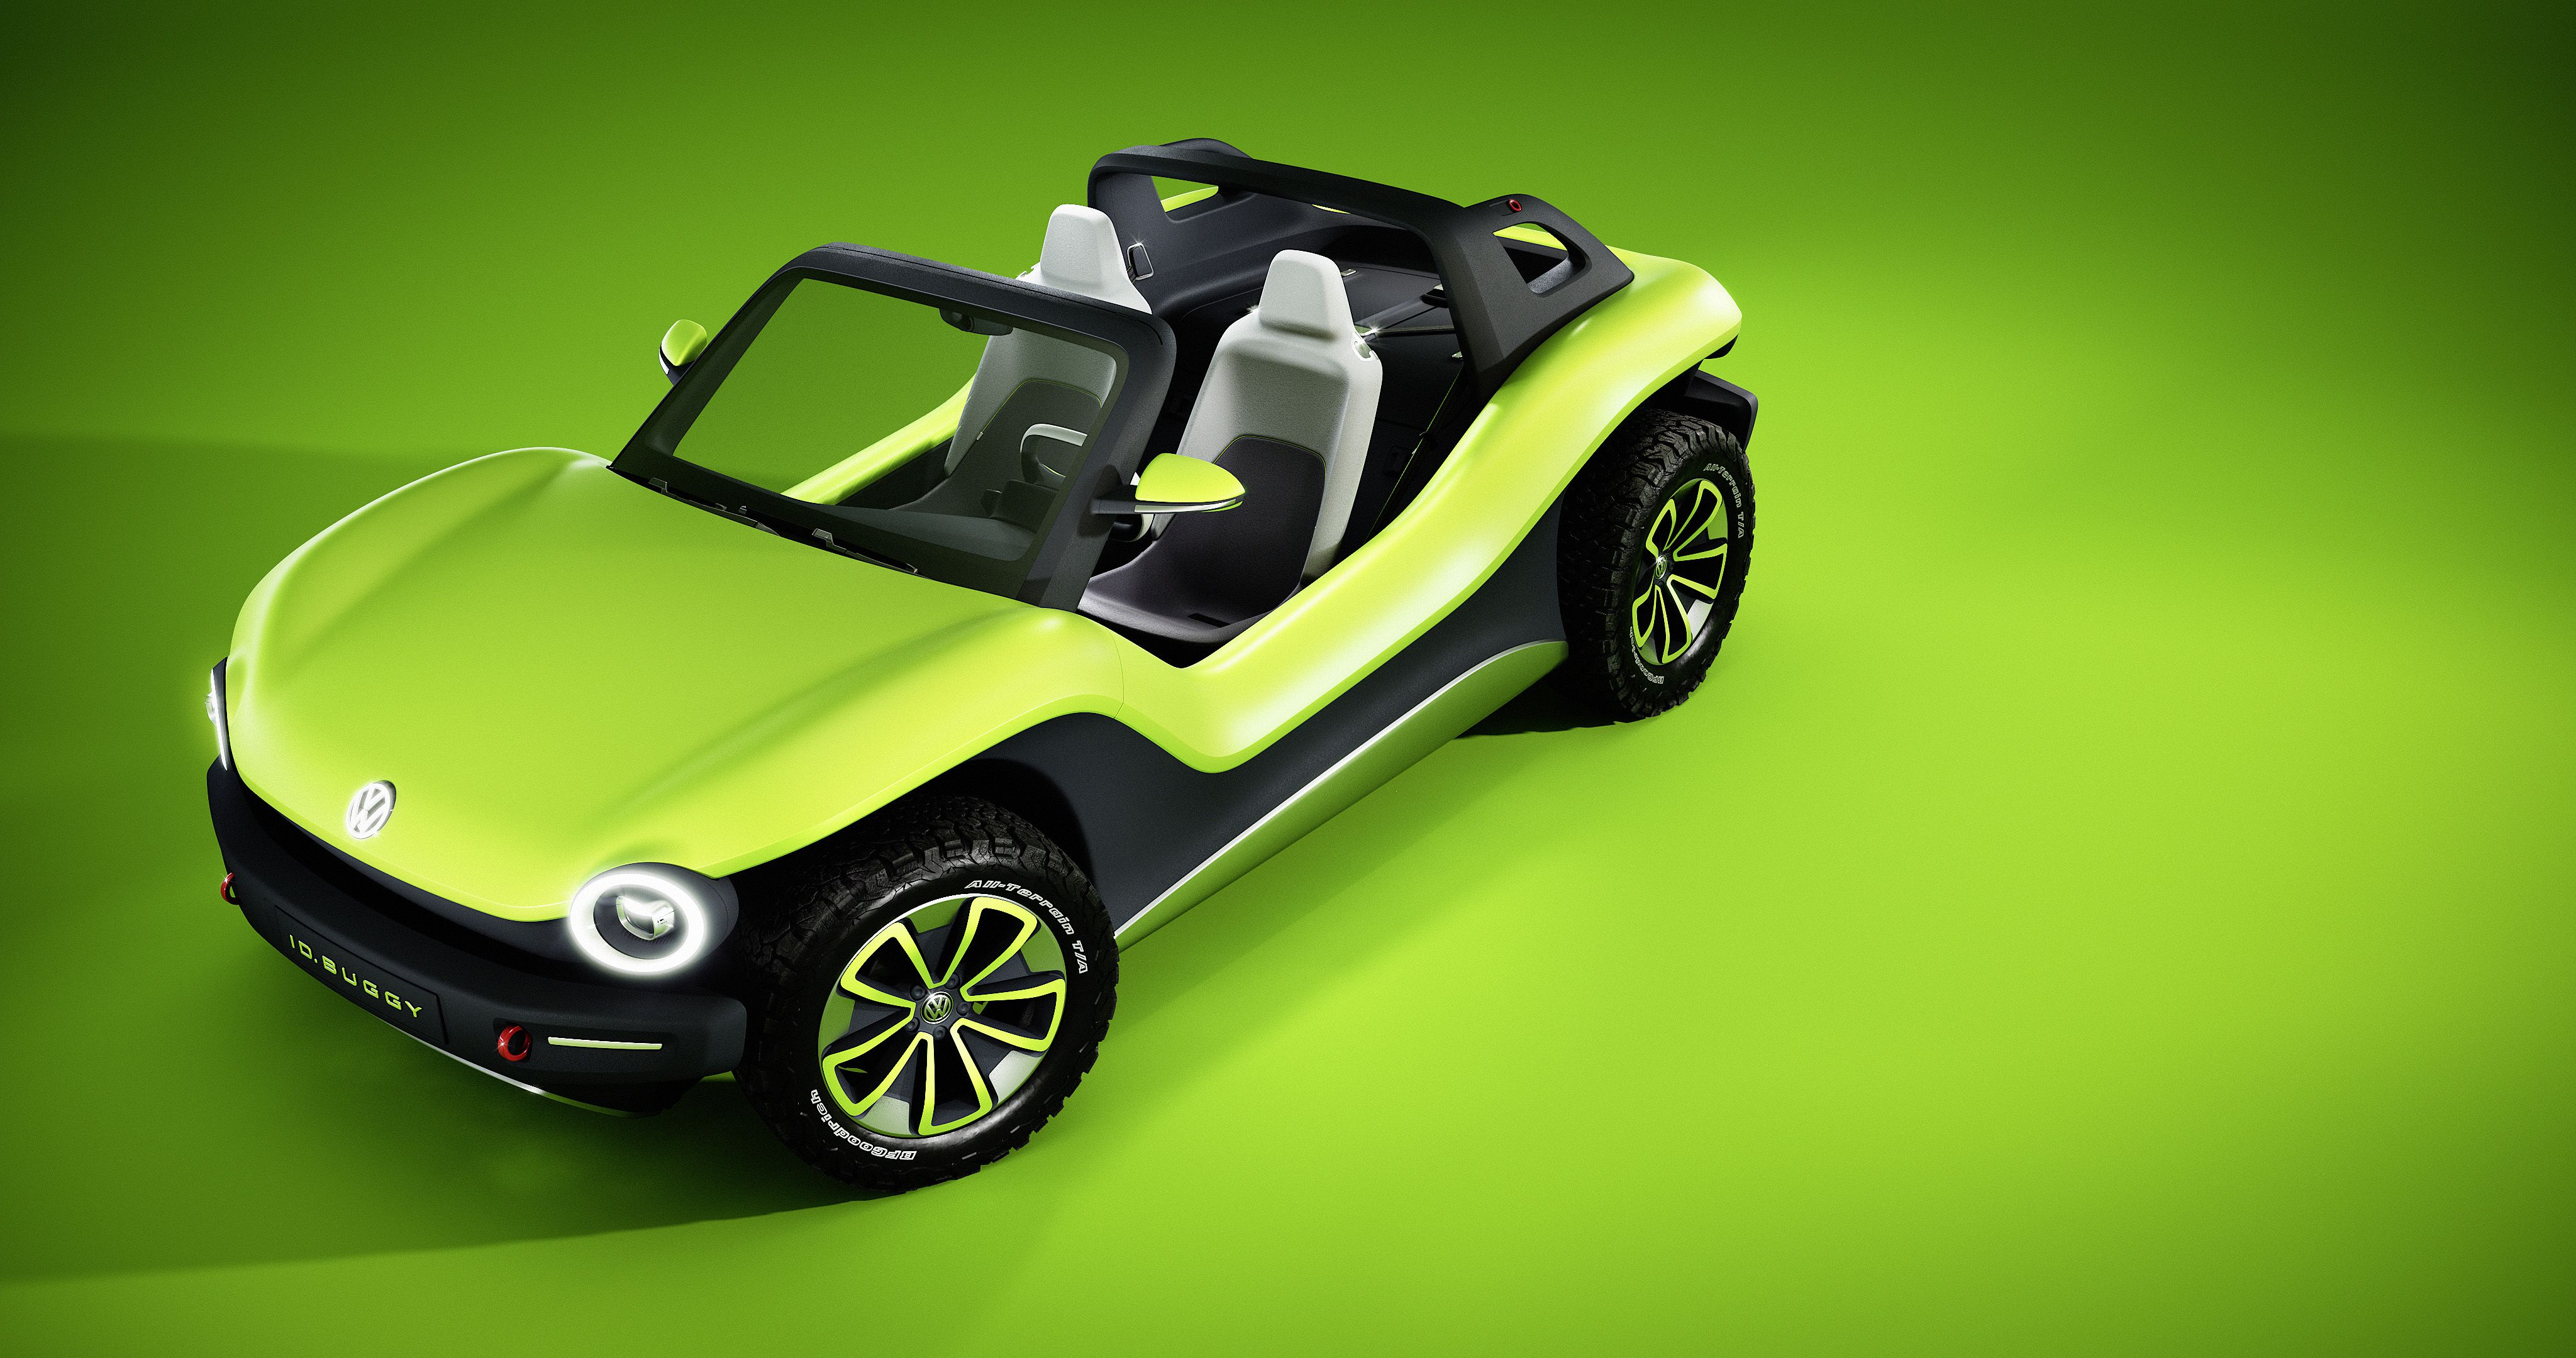 Image of the VW electric dune buggy concept